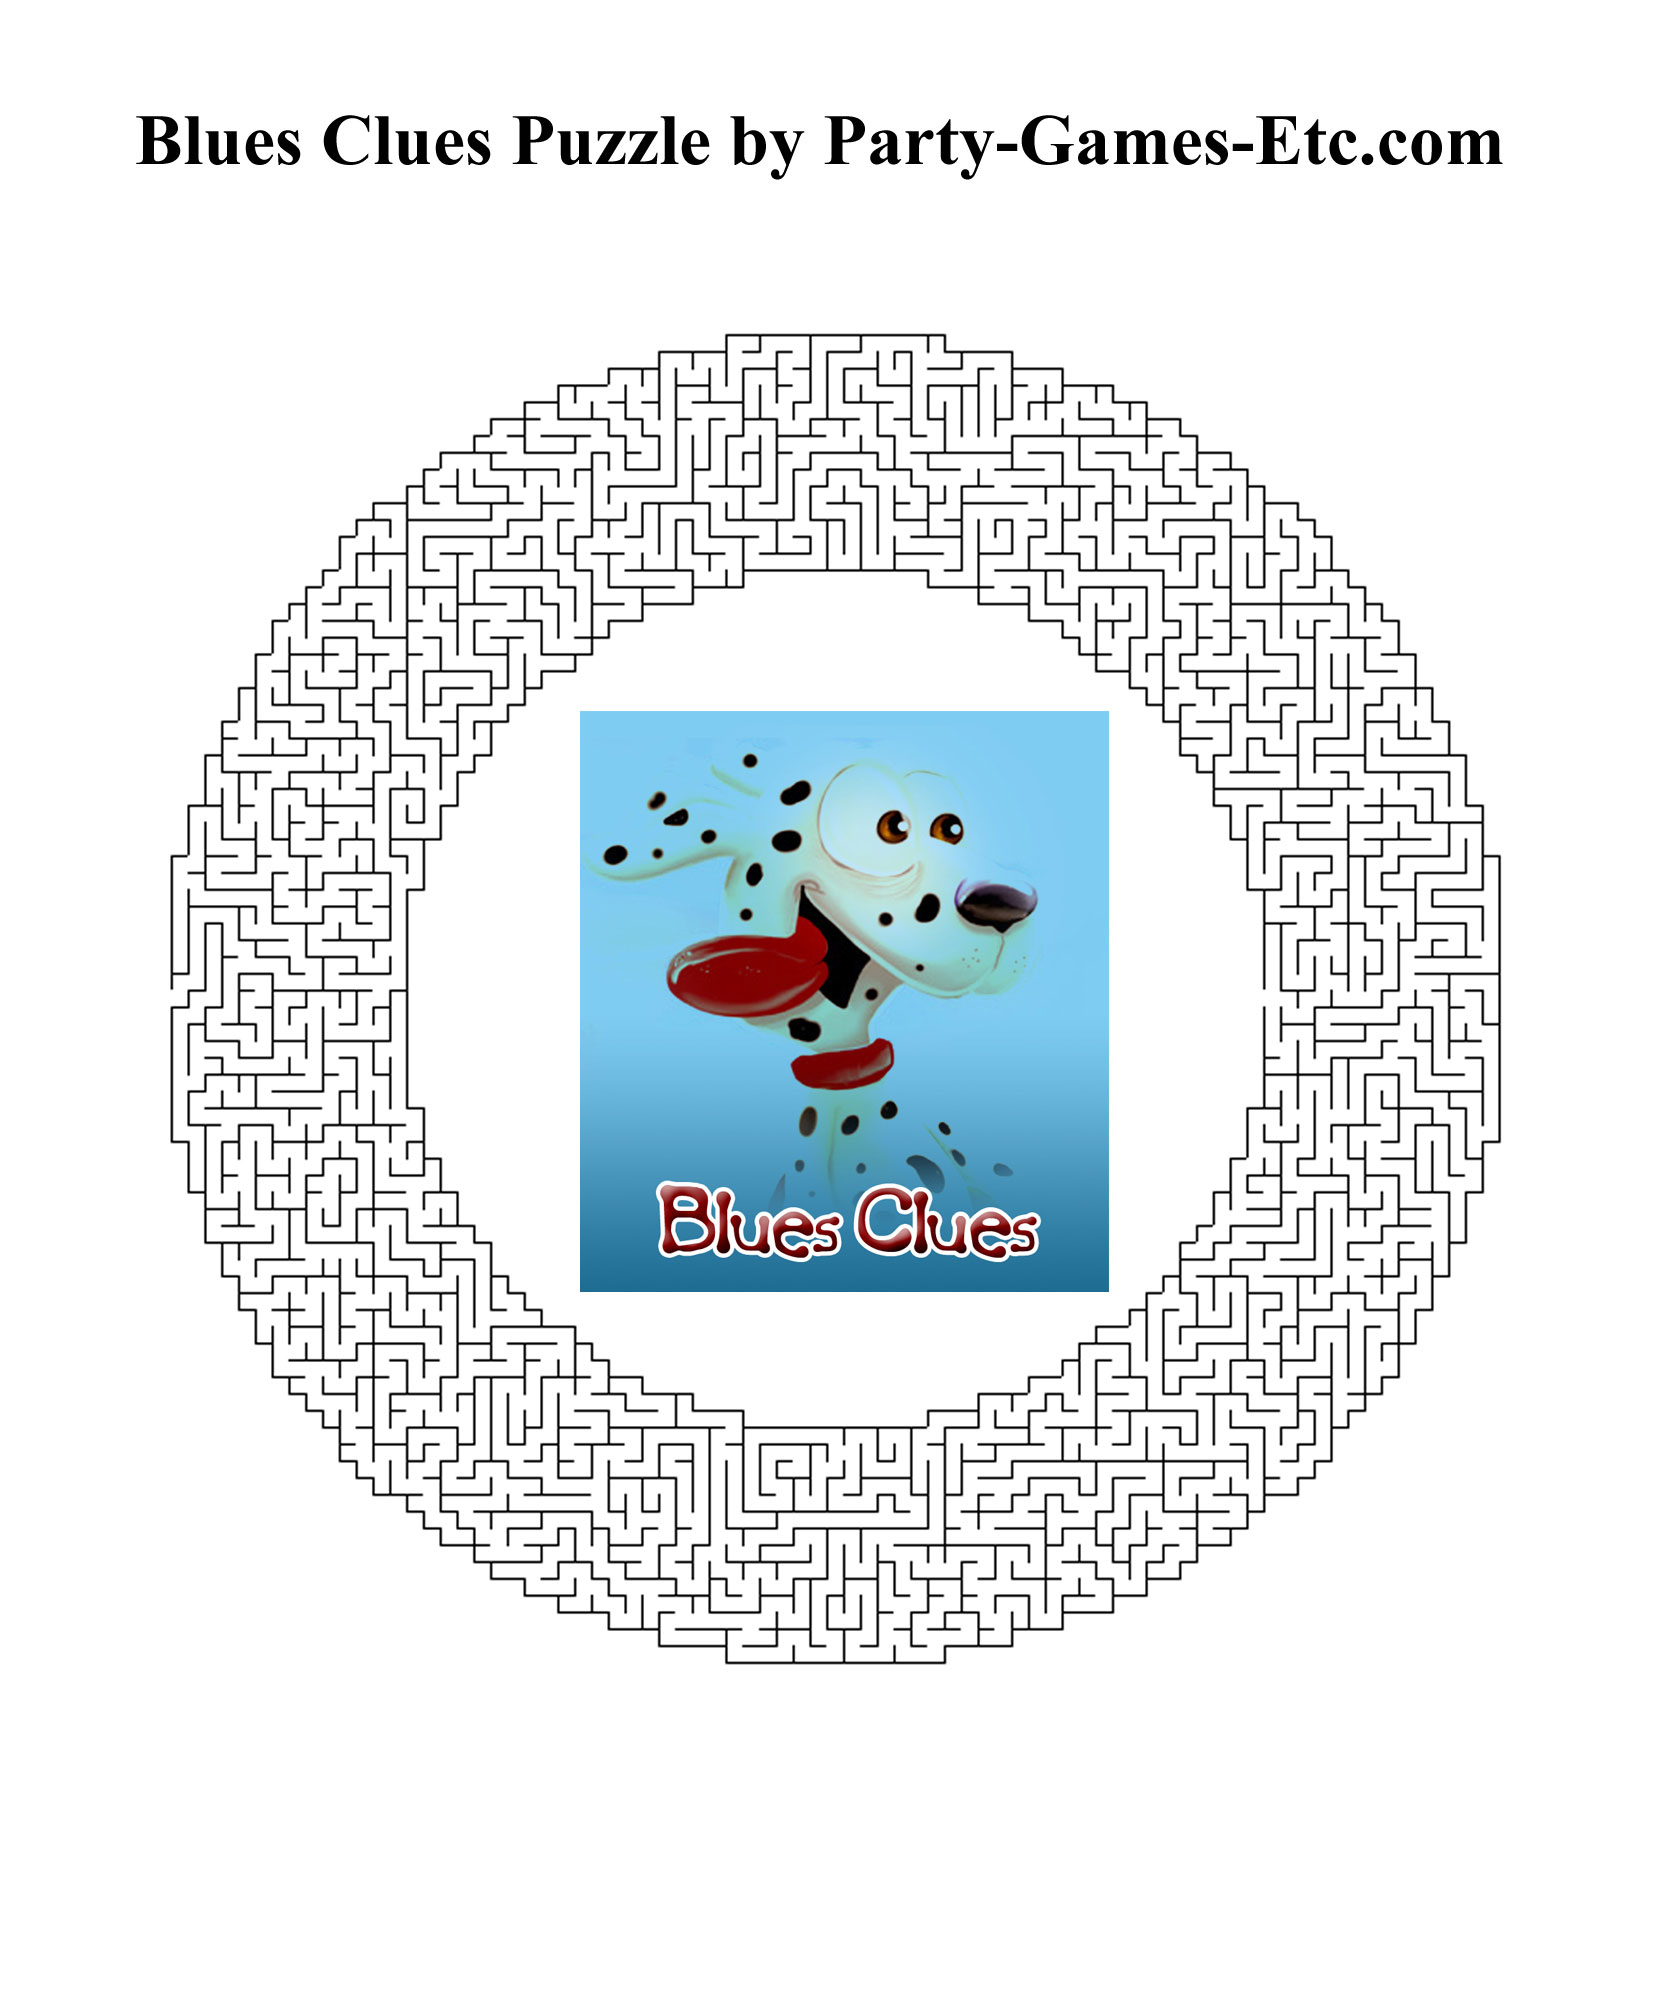 Free Printable Blues Clues Party Game and Pen and Paper Activity